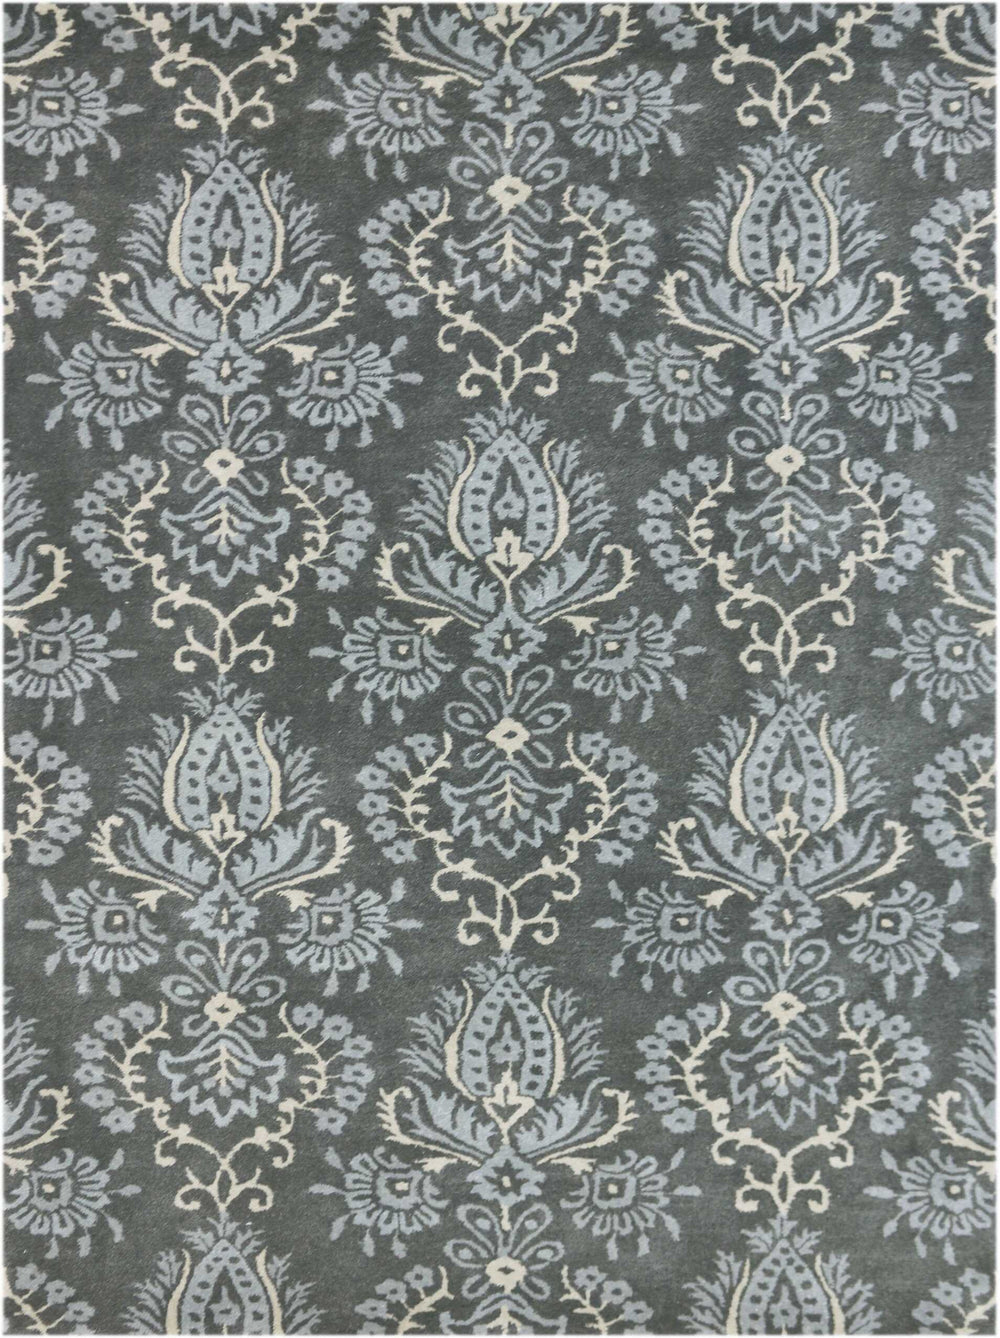 Amer Rugs Ascent ASC-289 Area Rug